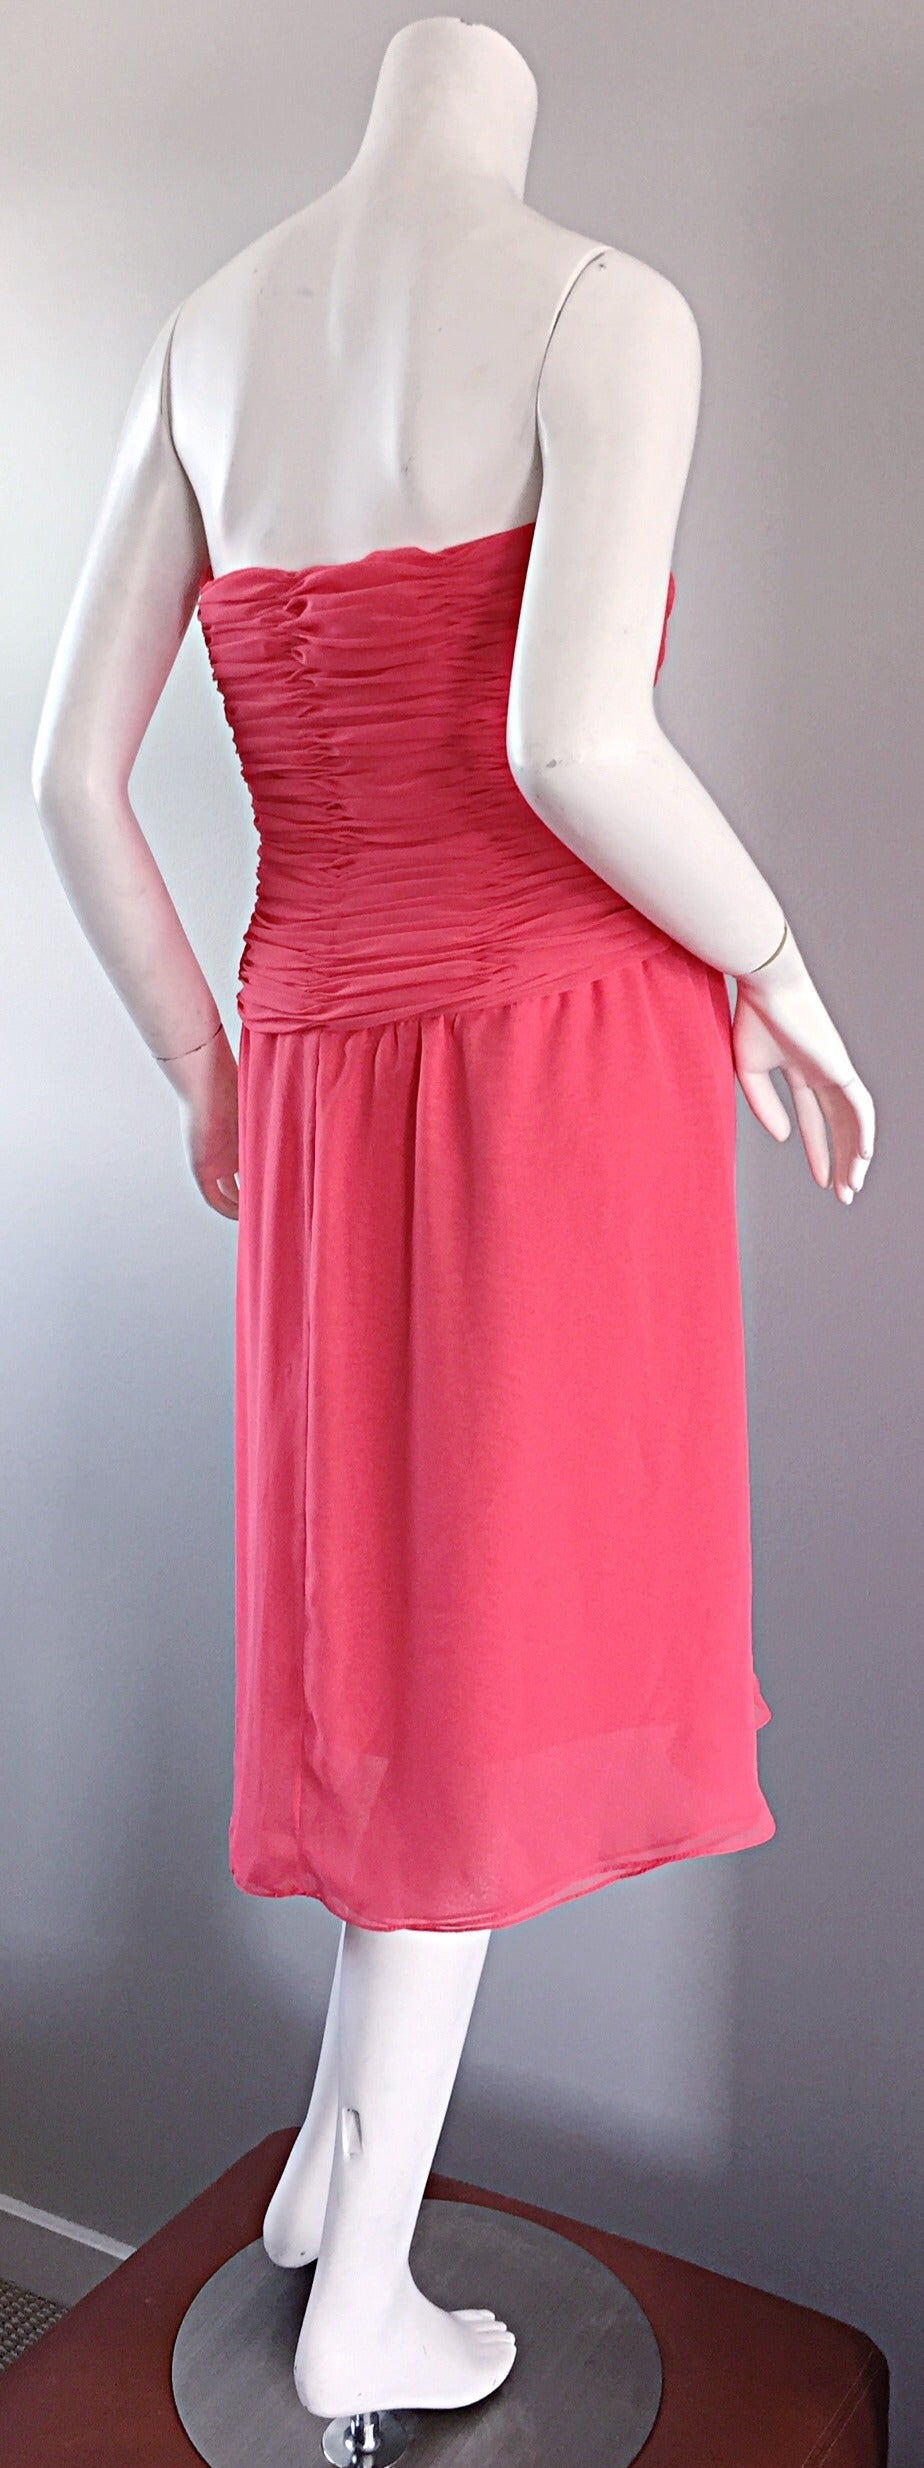 Victor Costa Coral Pink Strapless Flowy Knotted Vintage Cocktail Dress Size 8 10 In Excellent Condition For Sale In San Francisco, CA